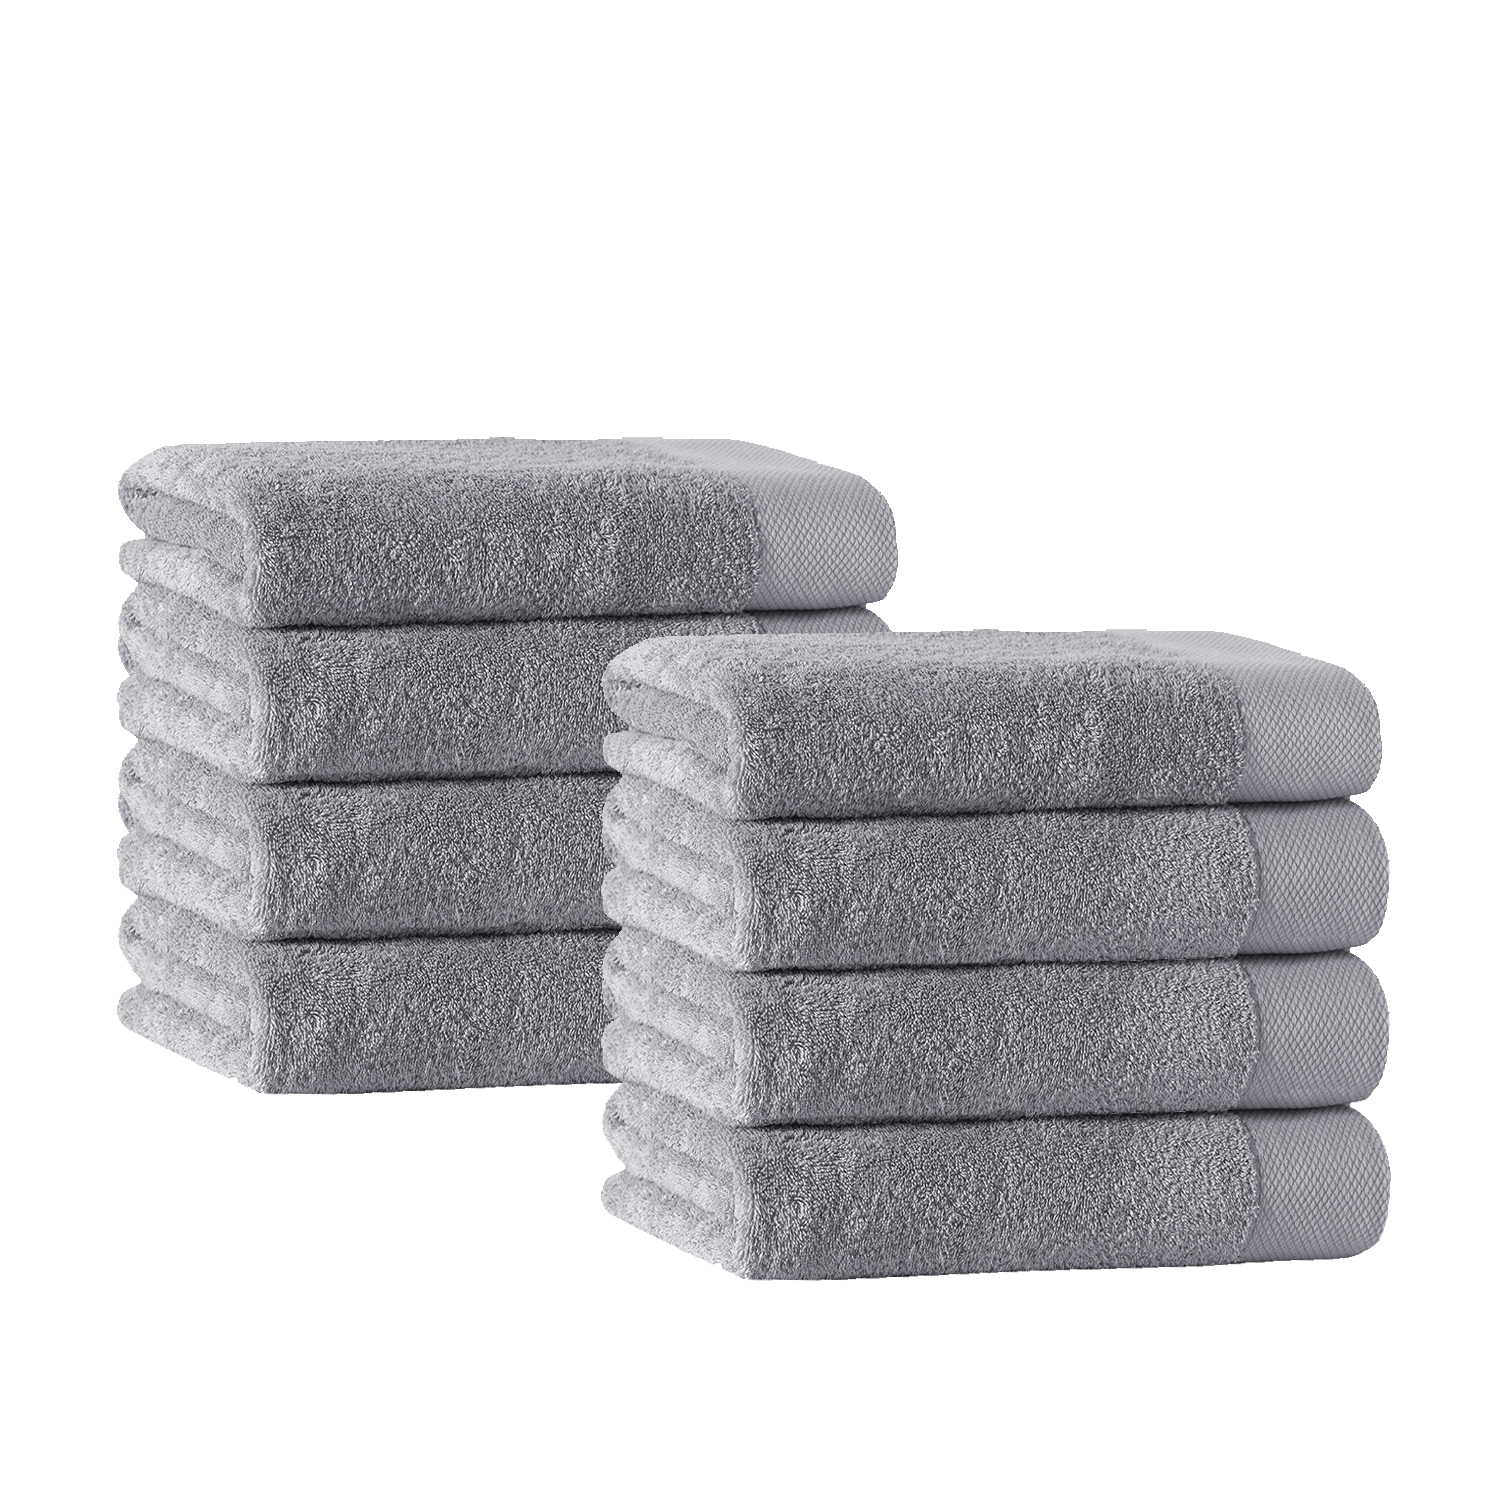 Signature Hand Towels (Set Of 8)